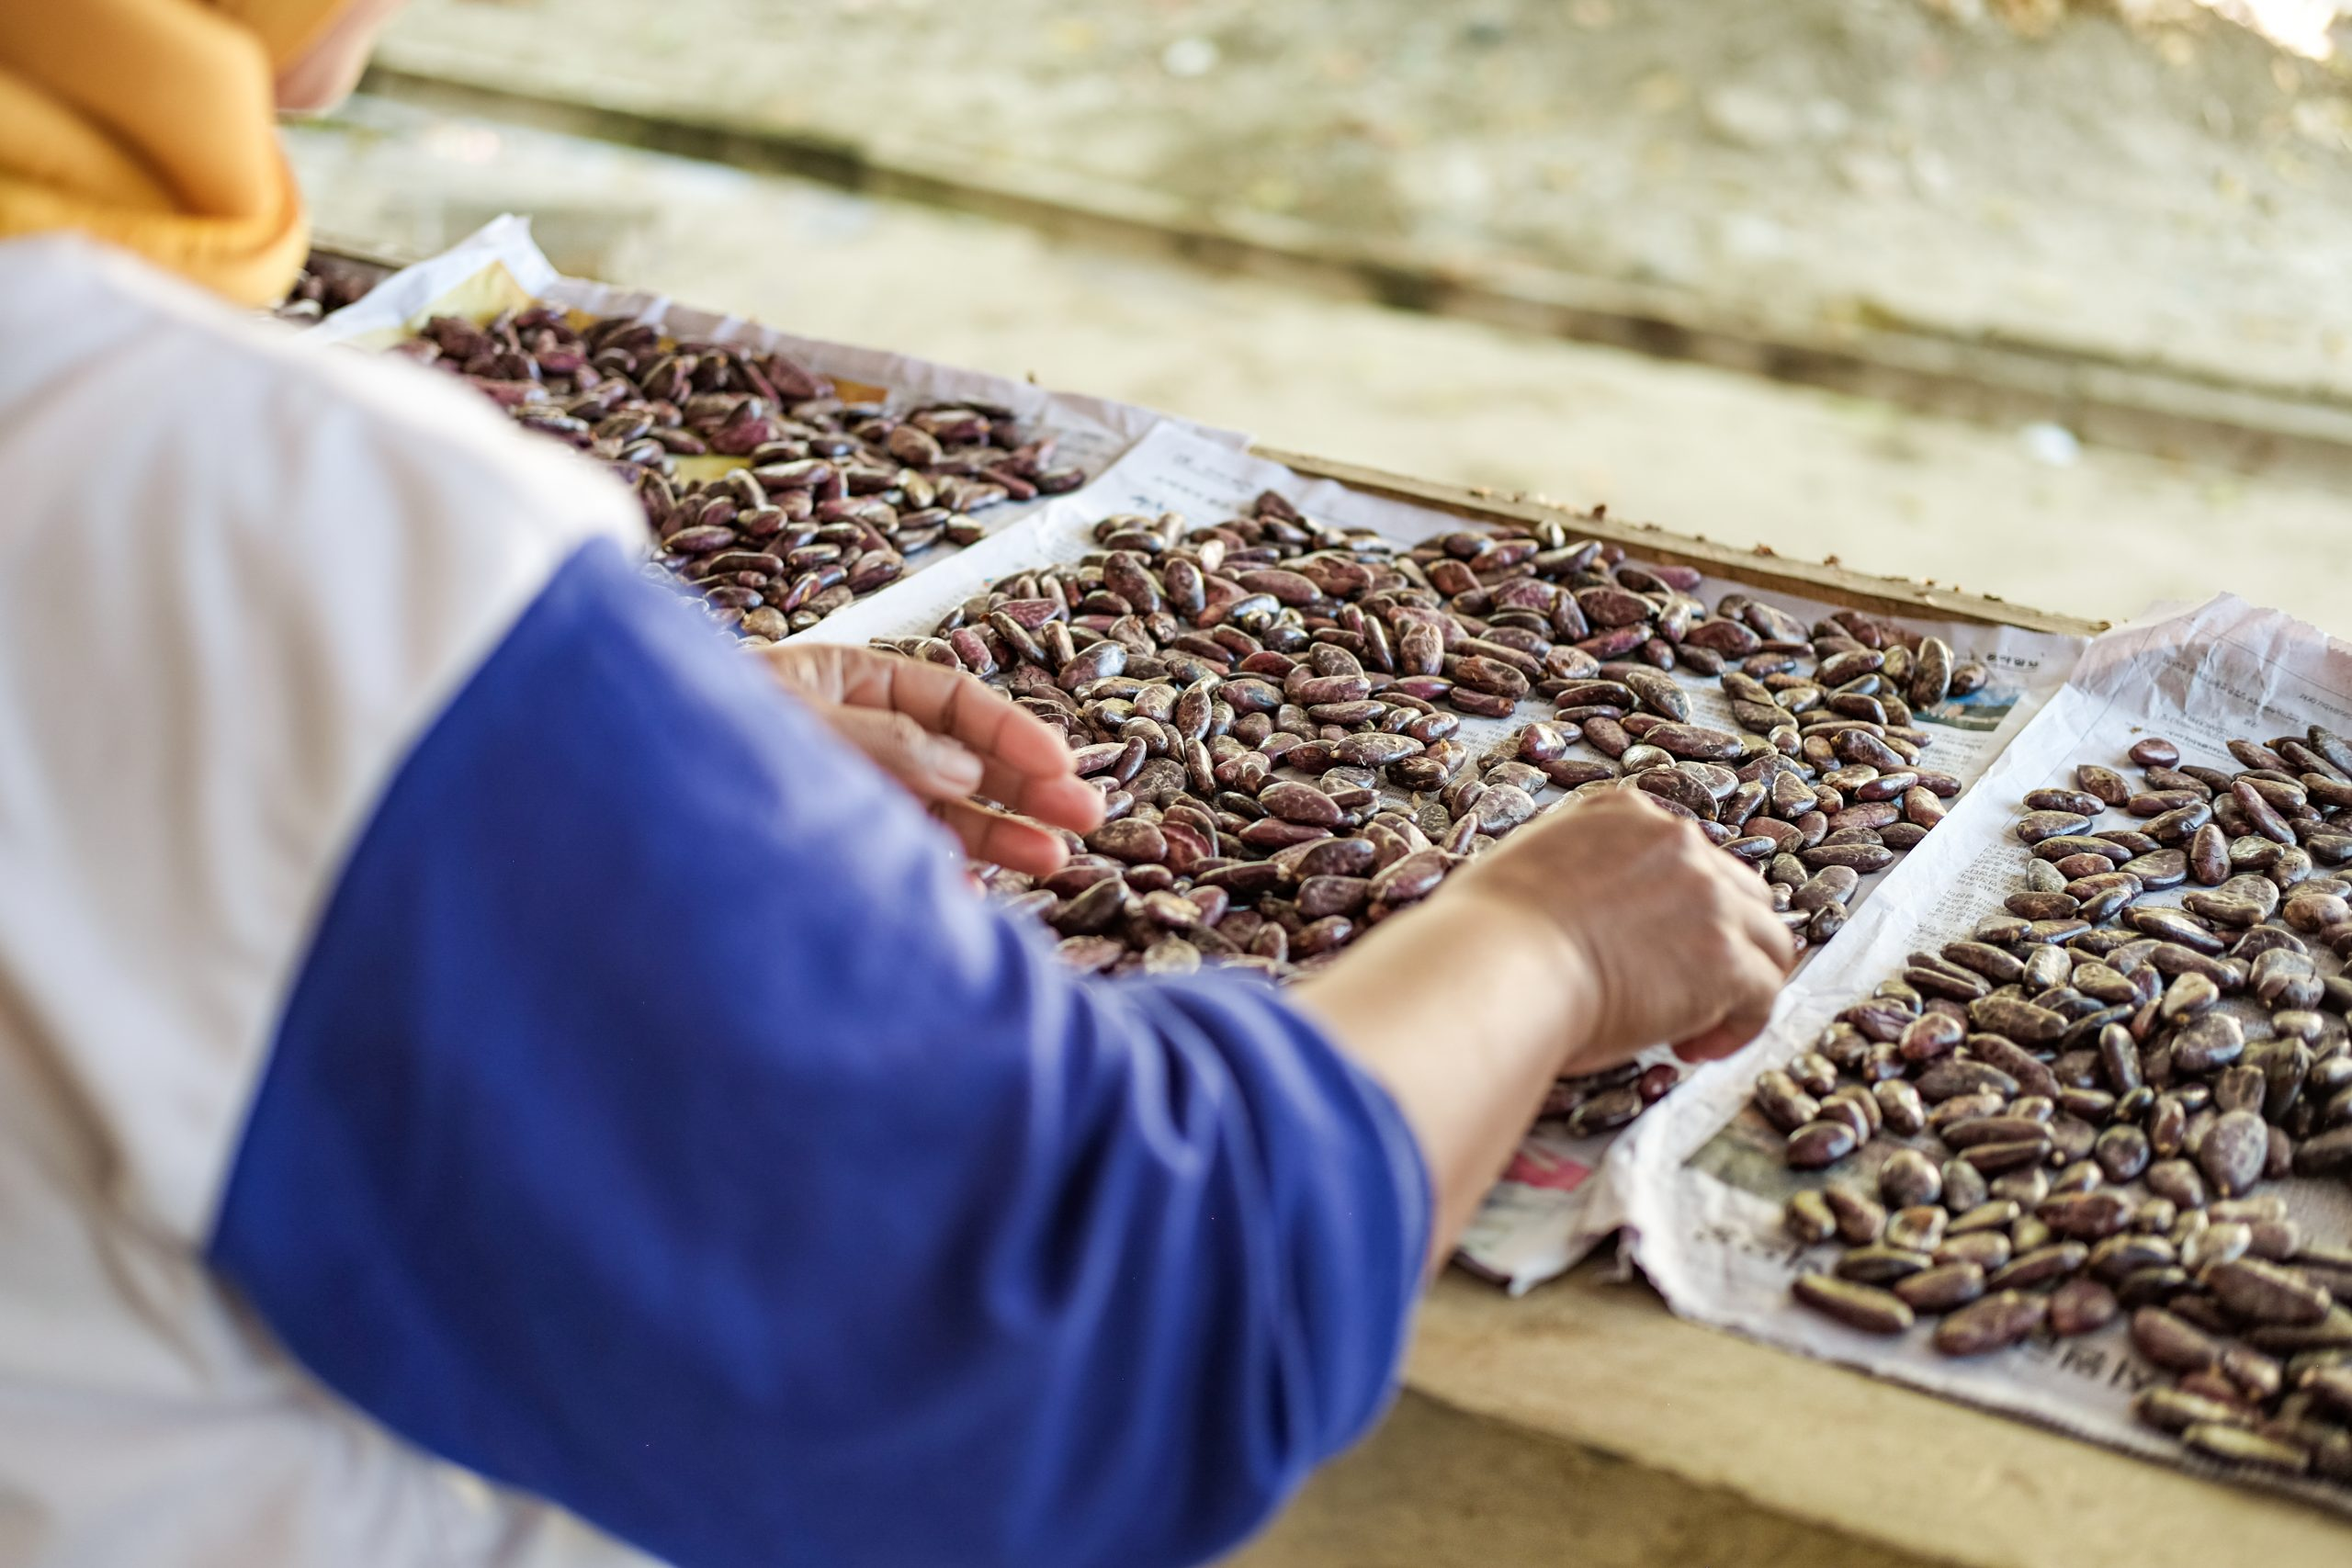 A woman sorting bean samples at the Indonesia Coffee and Cocoa Research Institute research station in Jember, East Java.